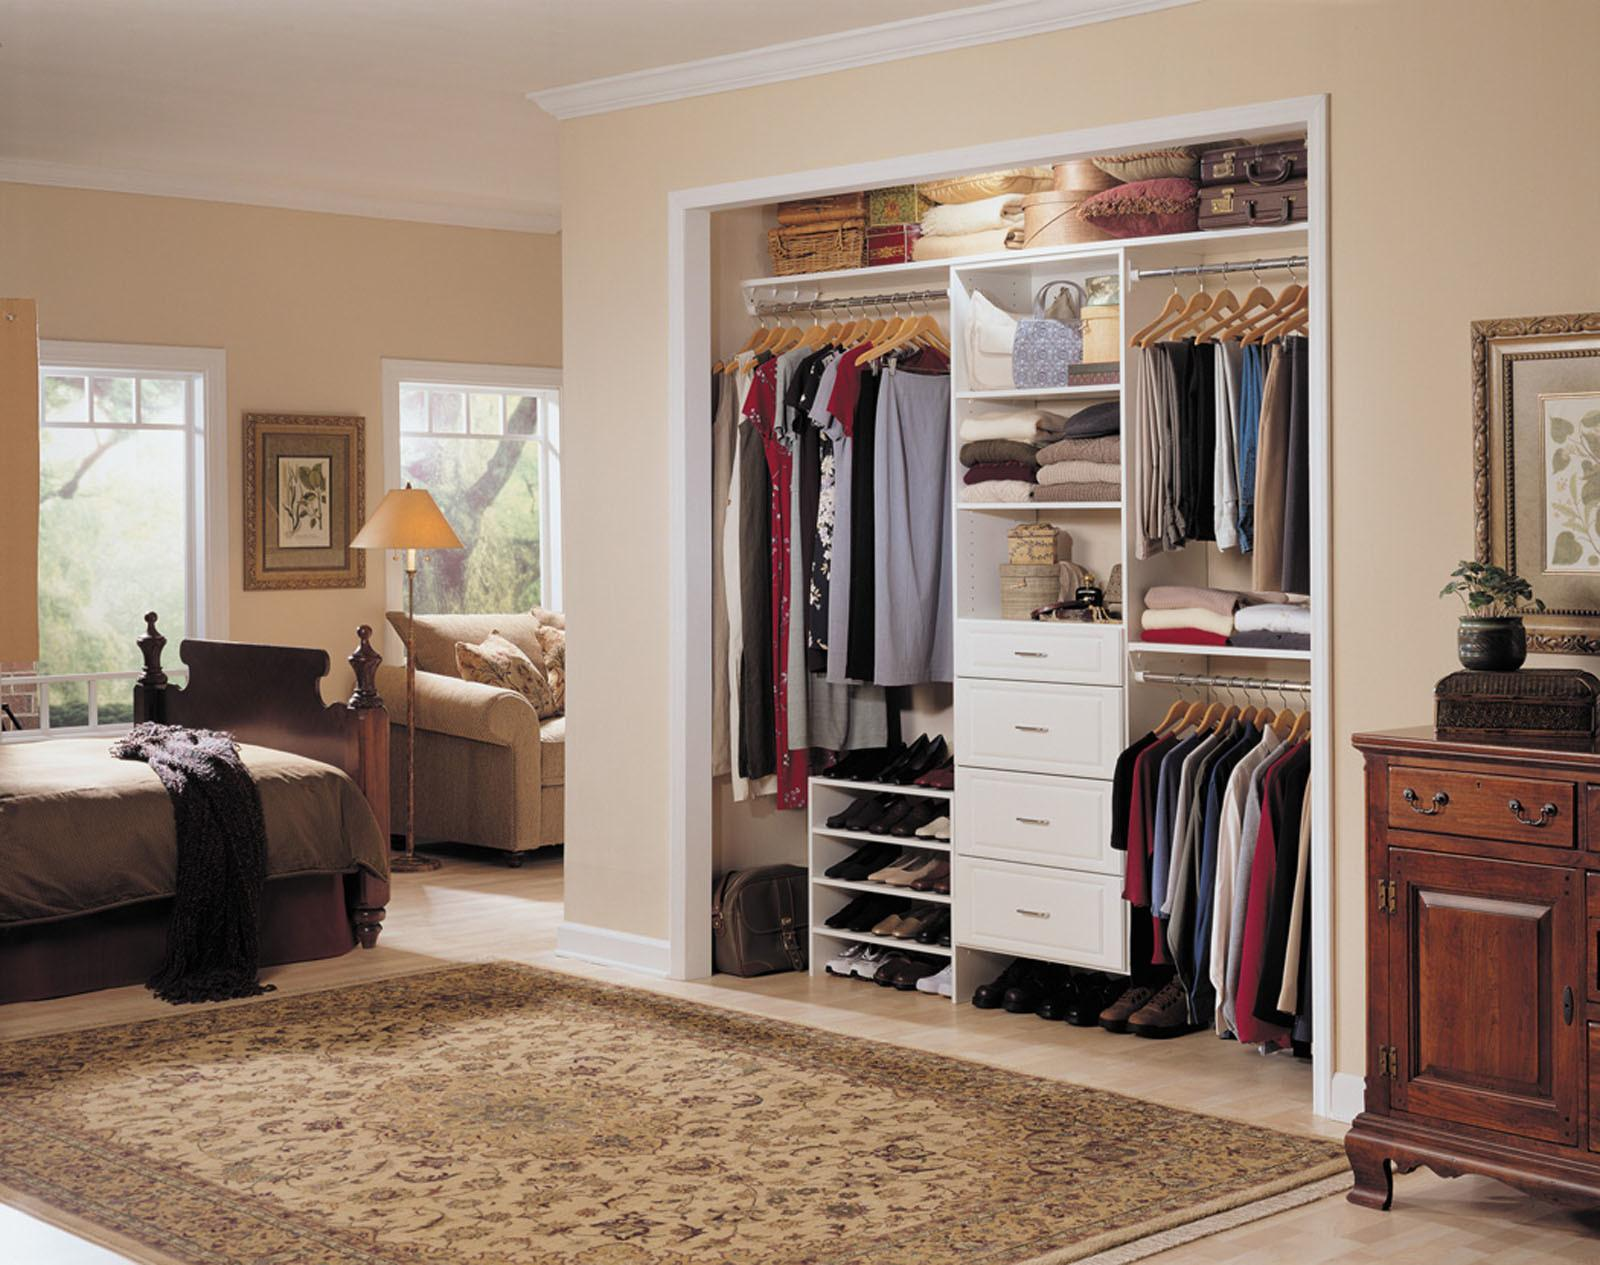 Small Room Design Bedroom Ideas Closets Rooms